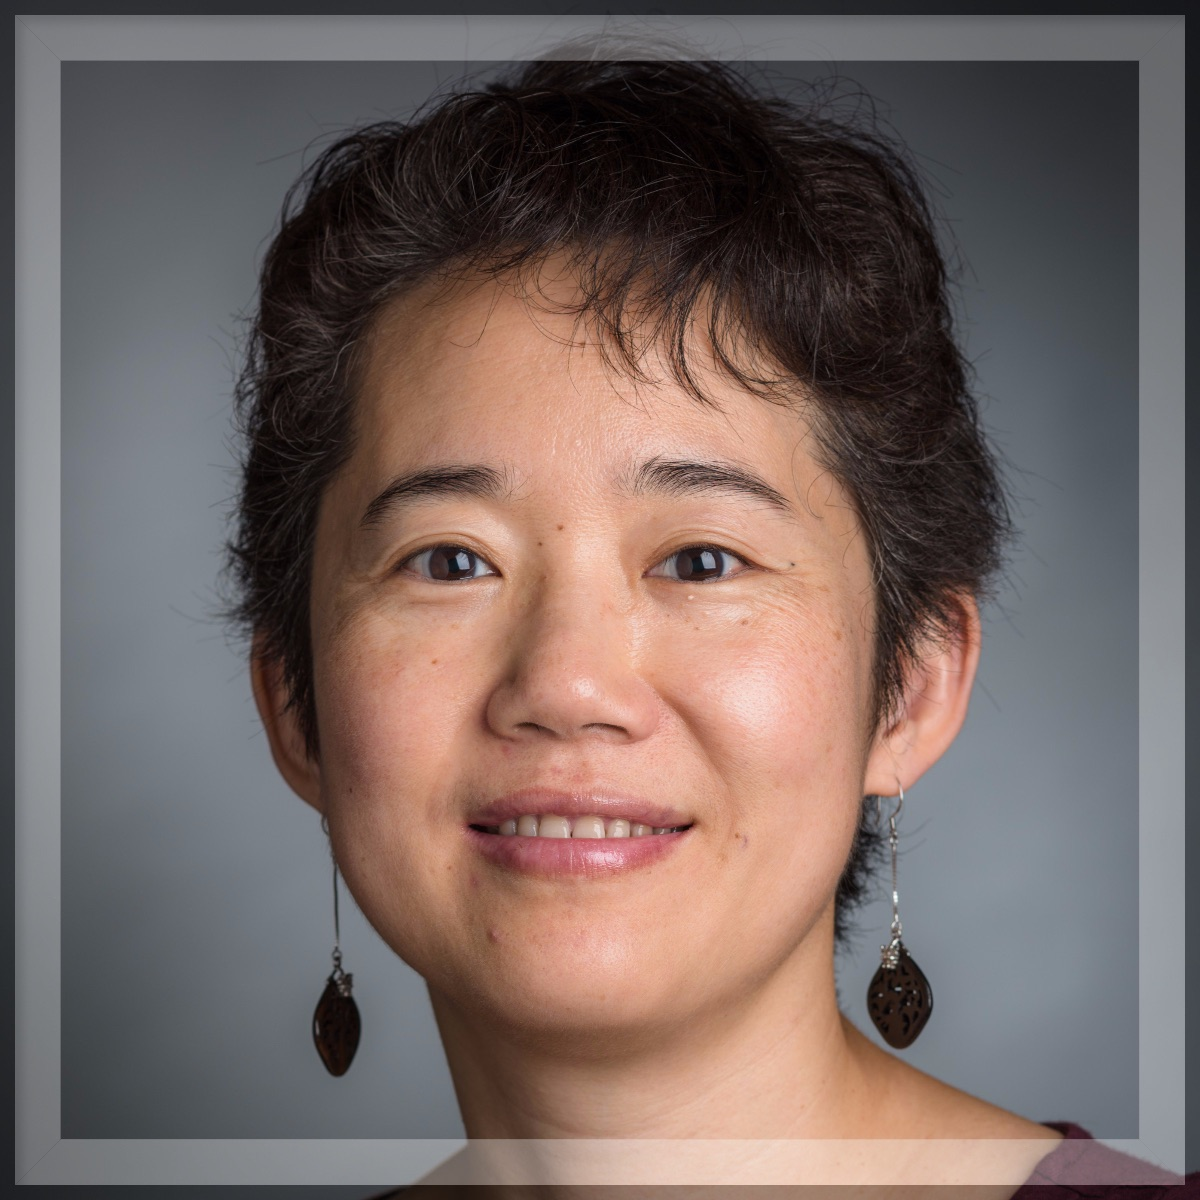 Xiaole Shirley Liu, Professor, Biostatistics, Harvard T.H. Chan School Of Public Health and 2019 ISCB Fellow